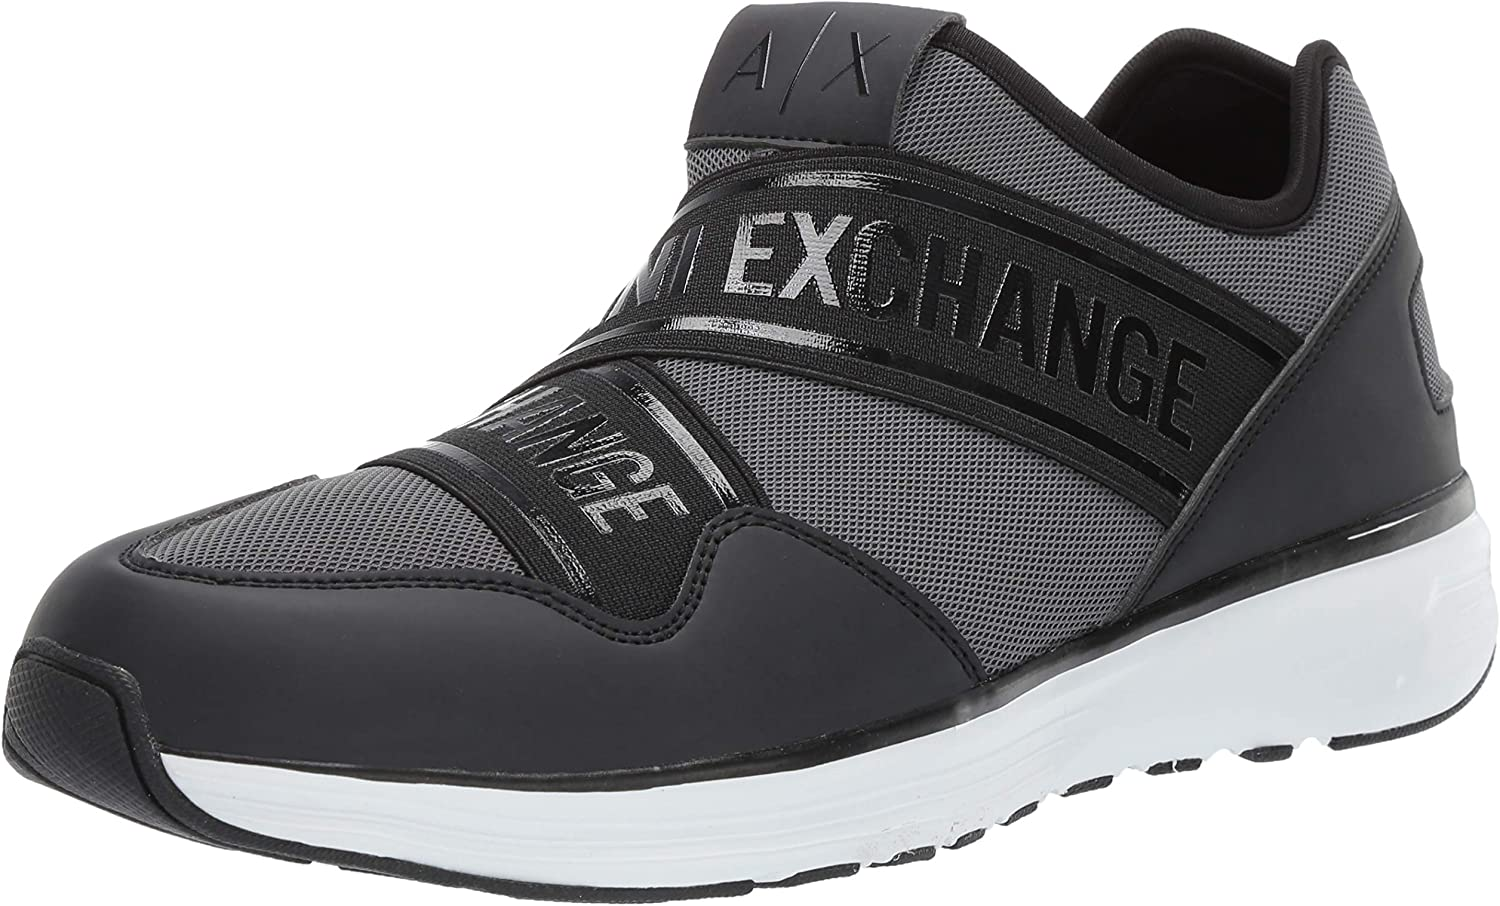 Armani Exchange Men's Low Top Slip on Sneaker